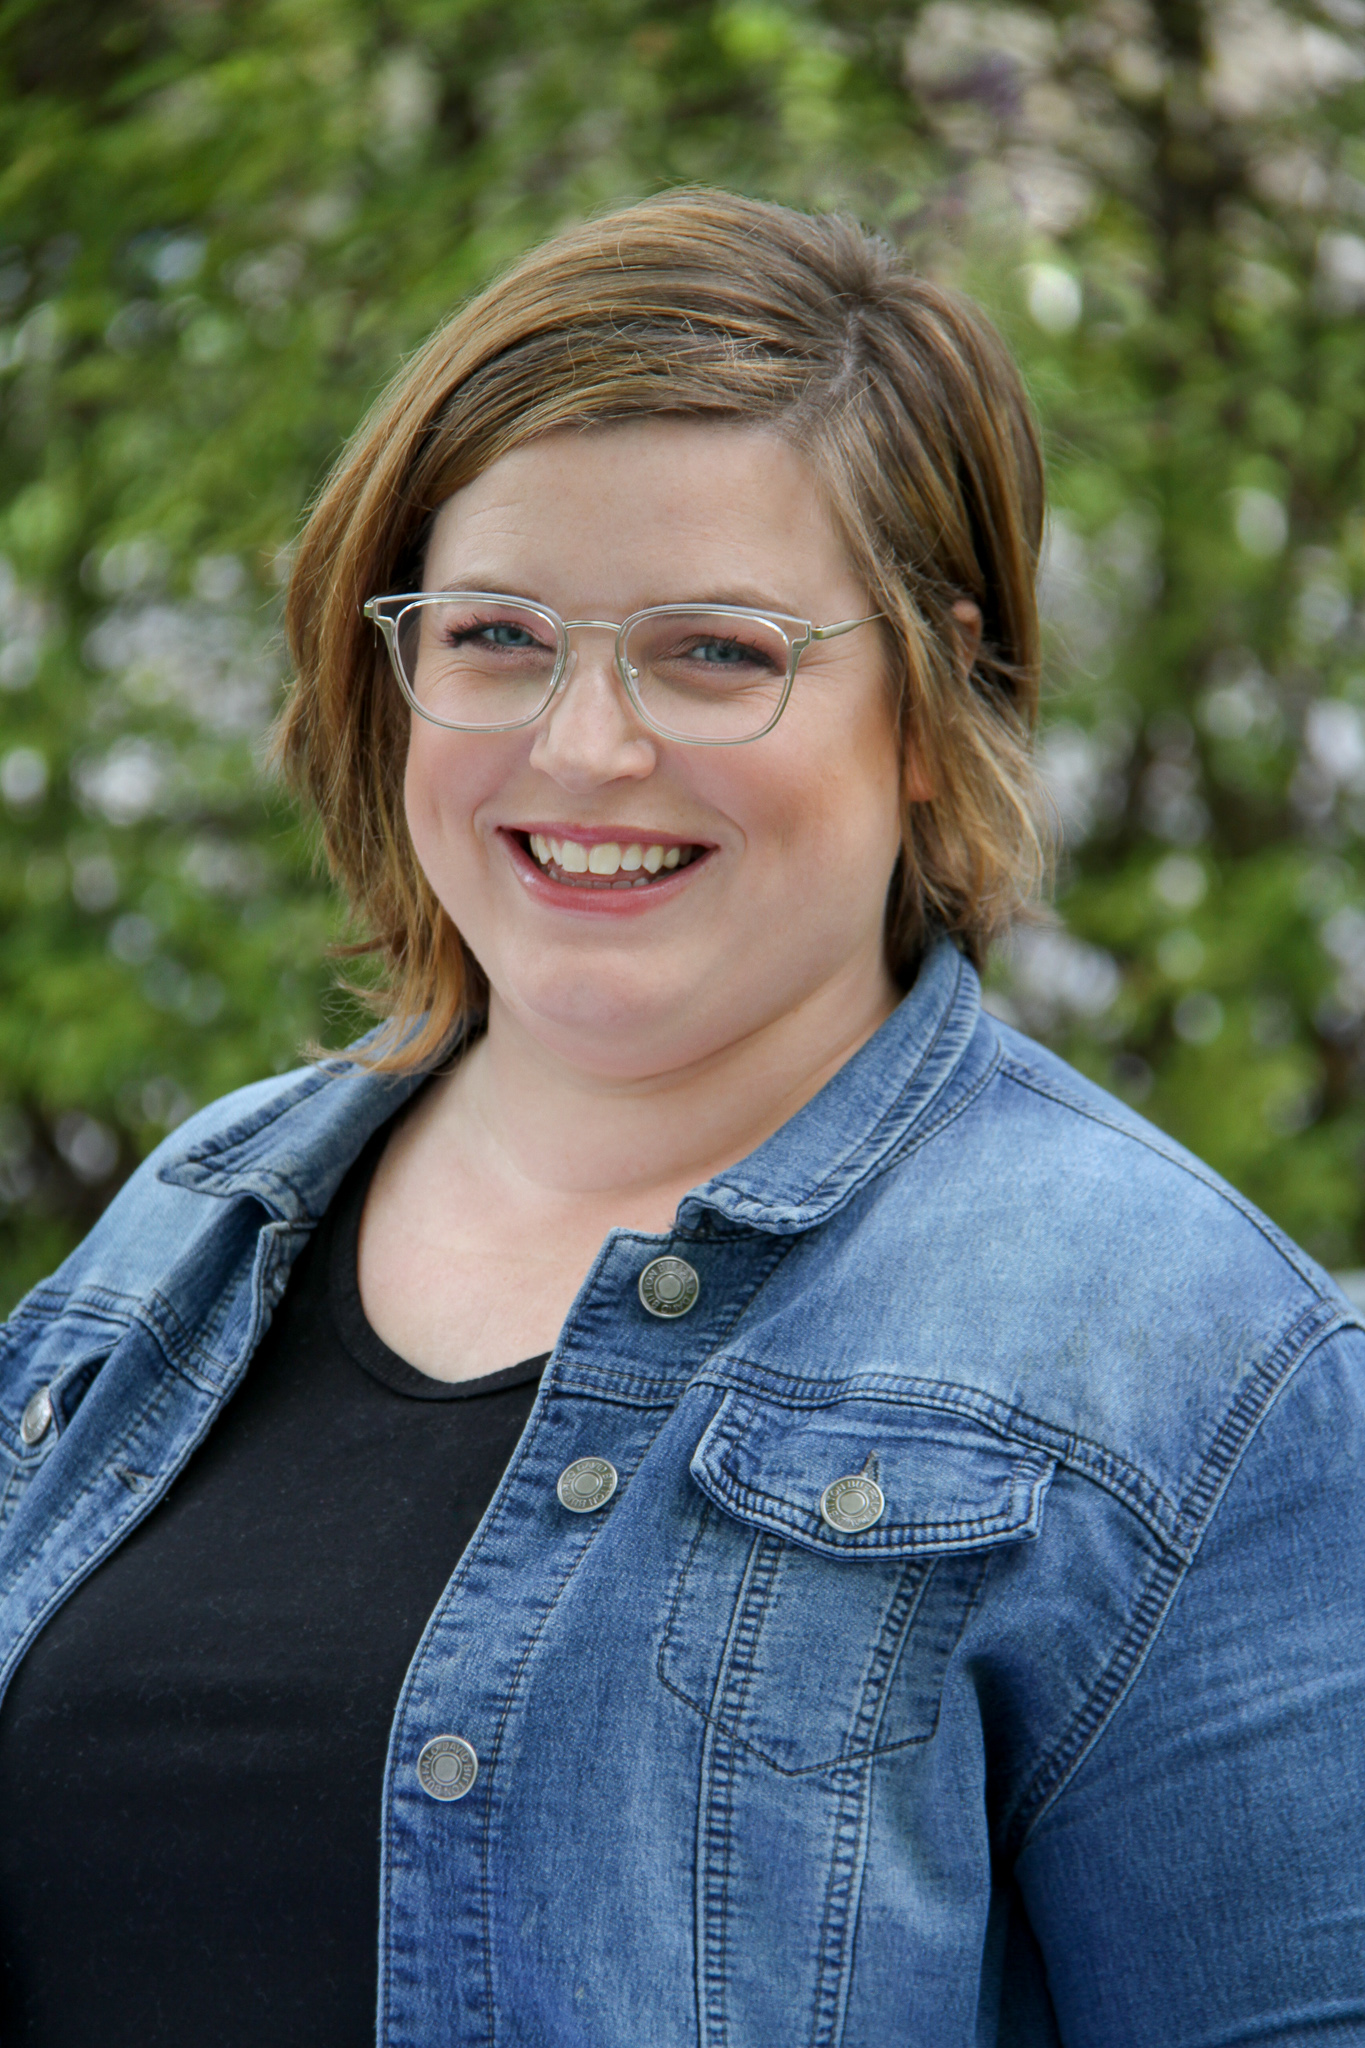 Katie Miller looks at the camera from behind clear-rimmed glasses, standing in front of a blurry background of green trees. She has short hair, and wears a denim jacket over a black t-shirt.